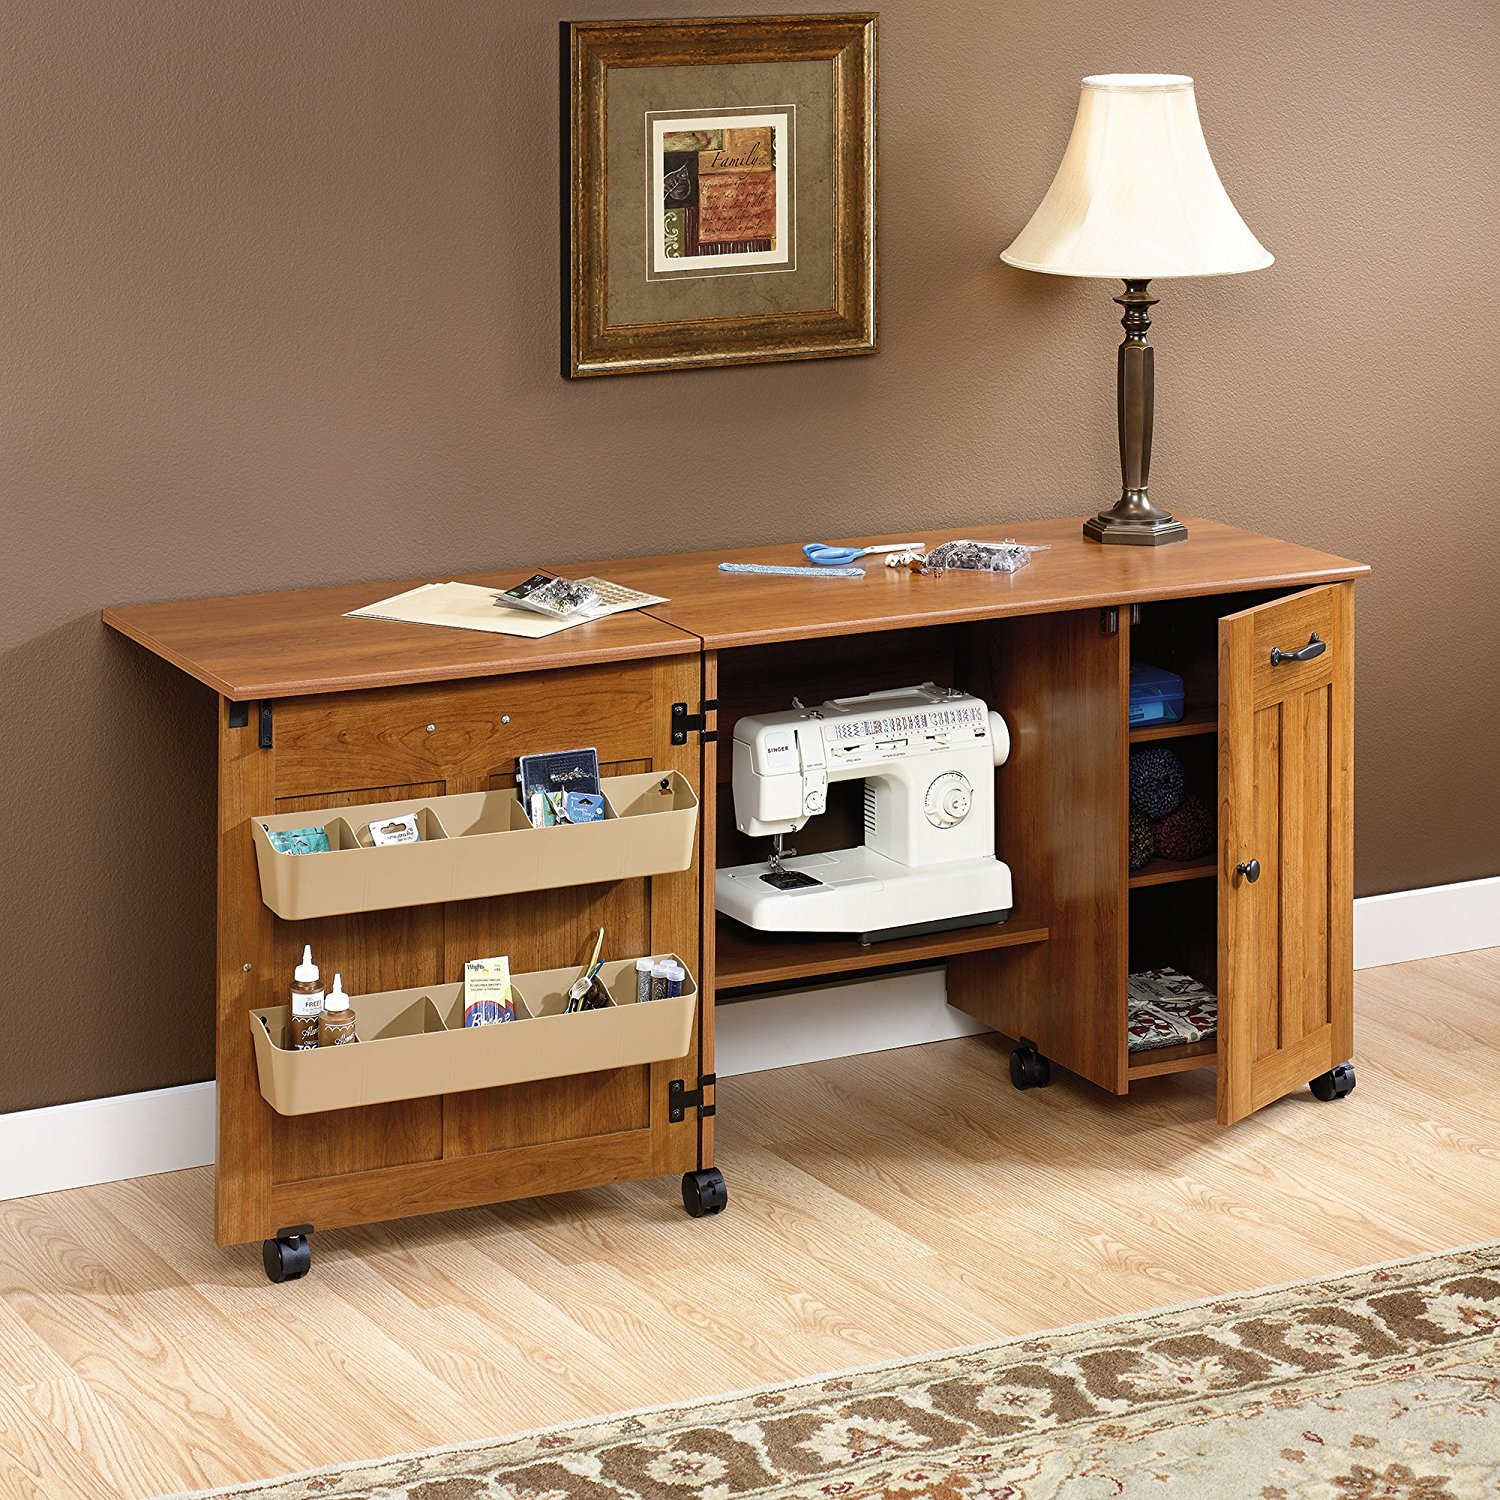 Best sewing table: Another great choice with enhanced durability